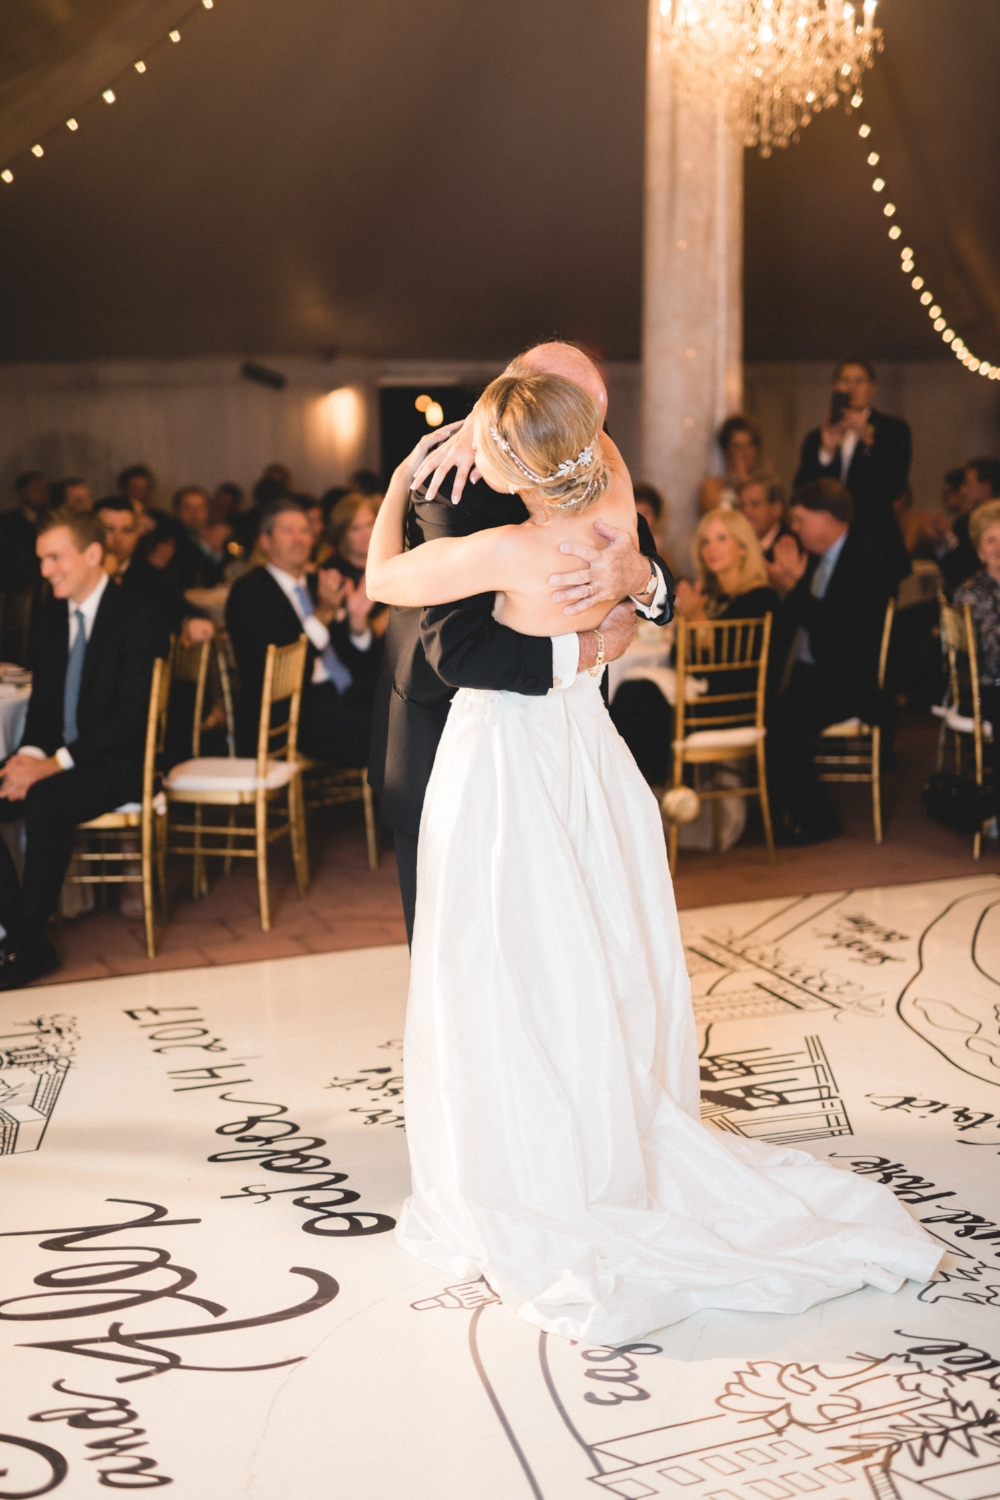 After the first few dances, the bustle came undone, and my dress literally swept the floor. I tried to adapt by holding my train with the wrist loop....until that broke too! This photo of dancing with my dad is even more beautiful because of it.